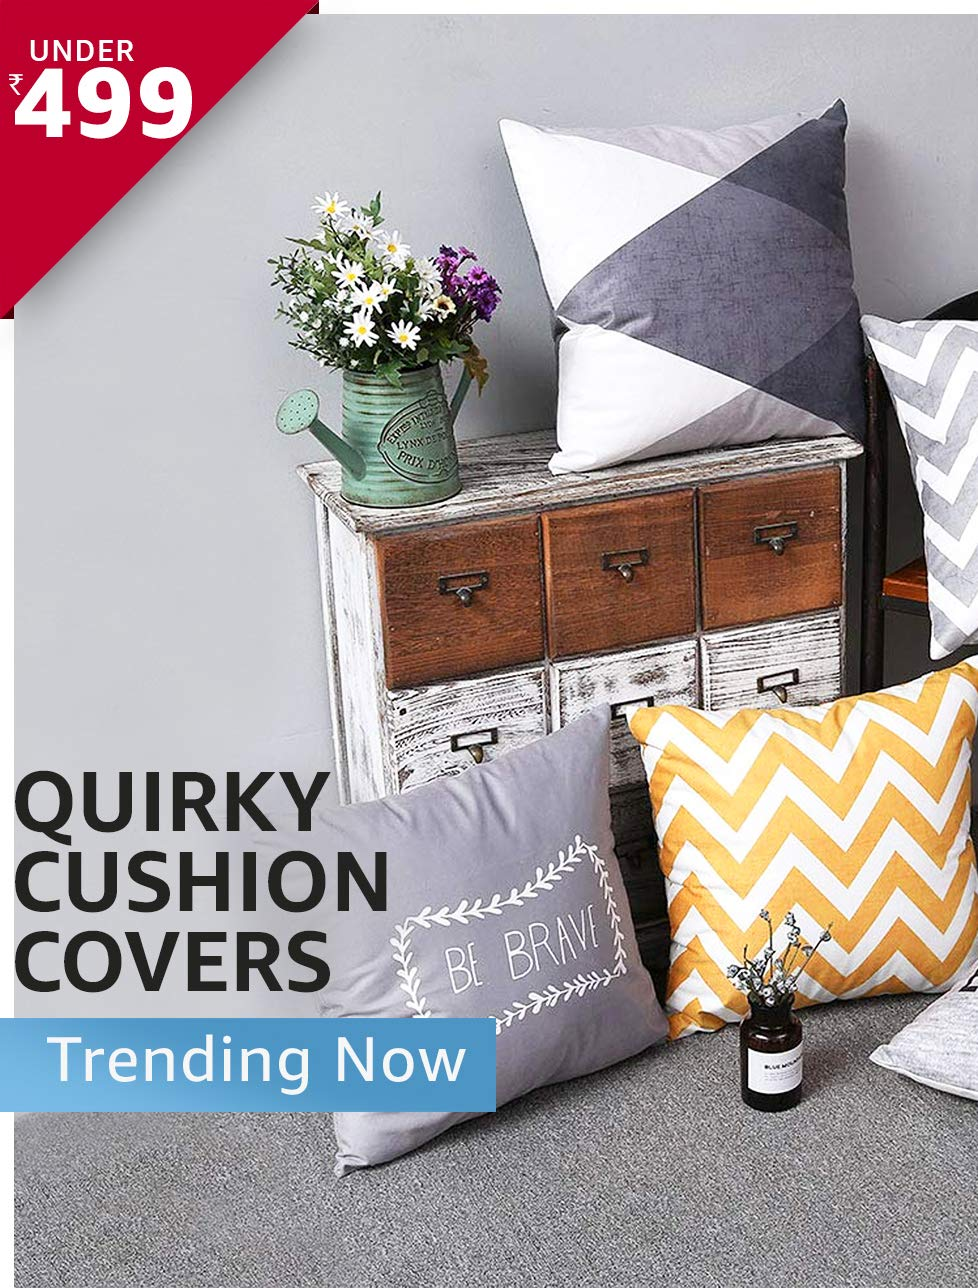 Quirky Cushion Covers